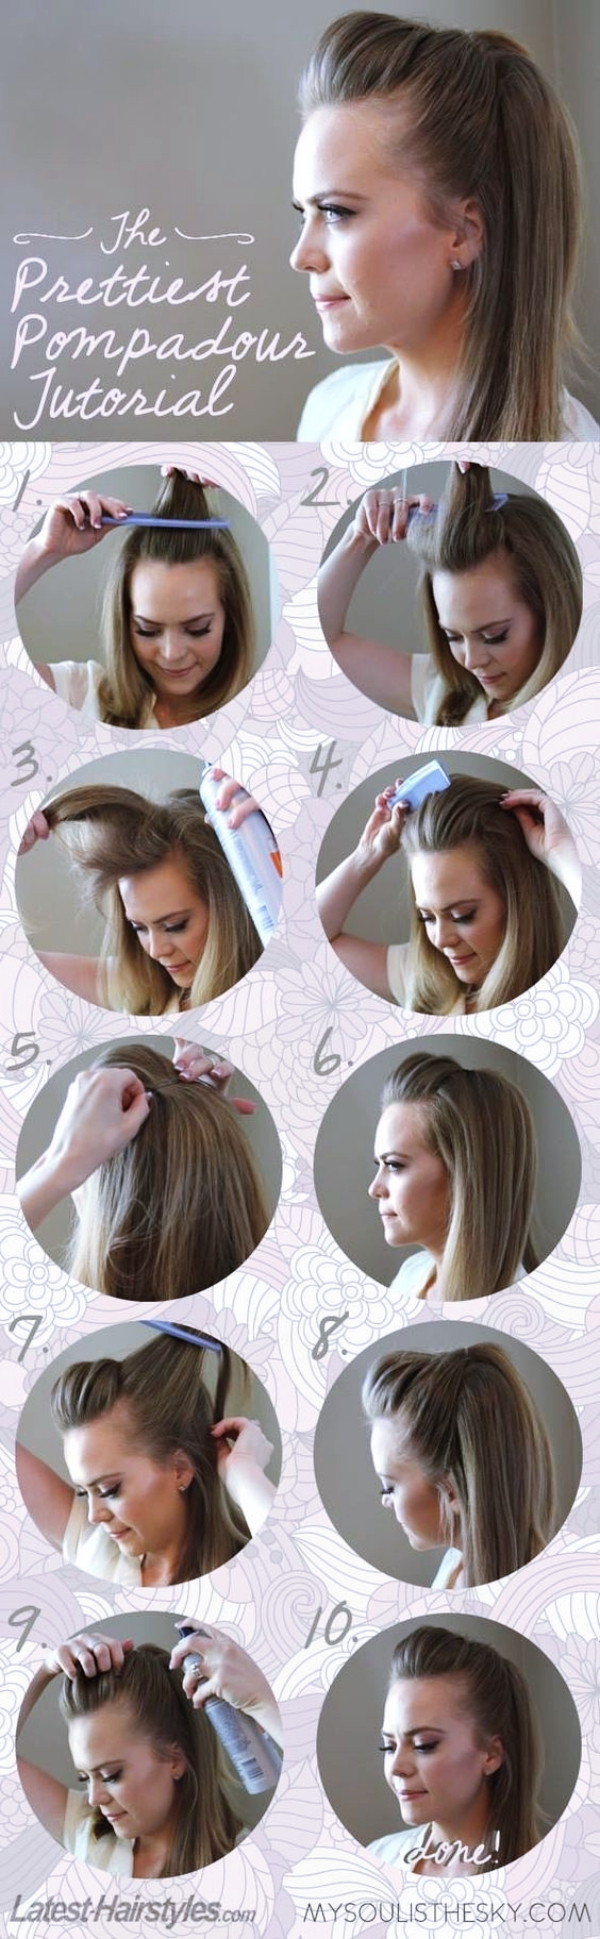 40 quick hairstyles guides for office women - office salt